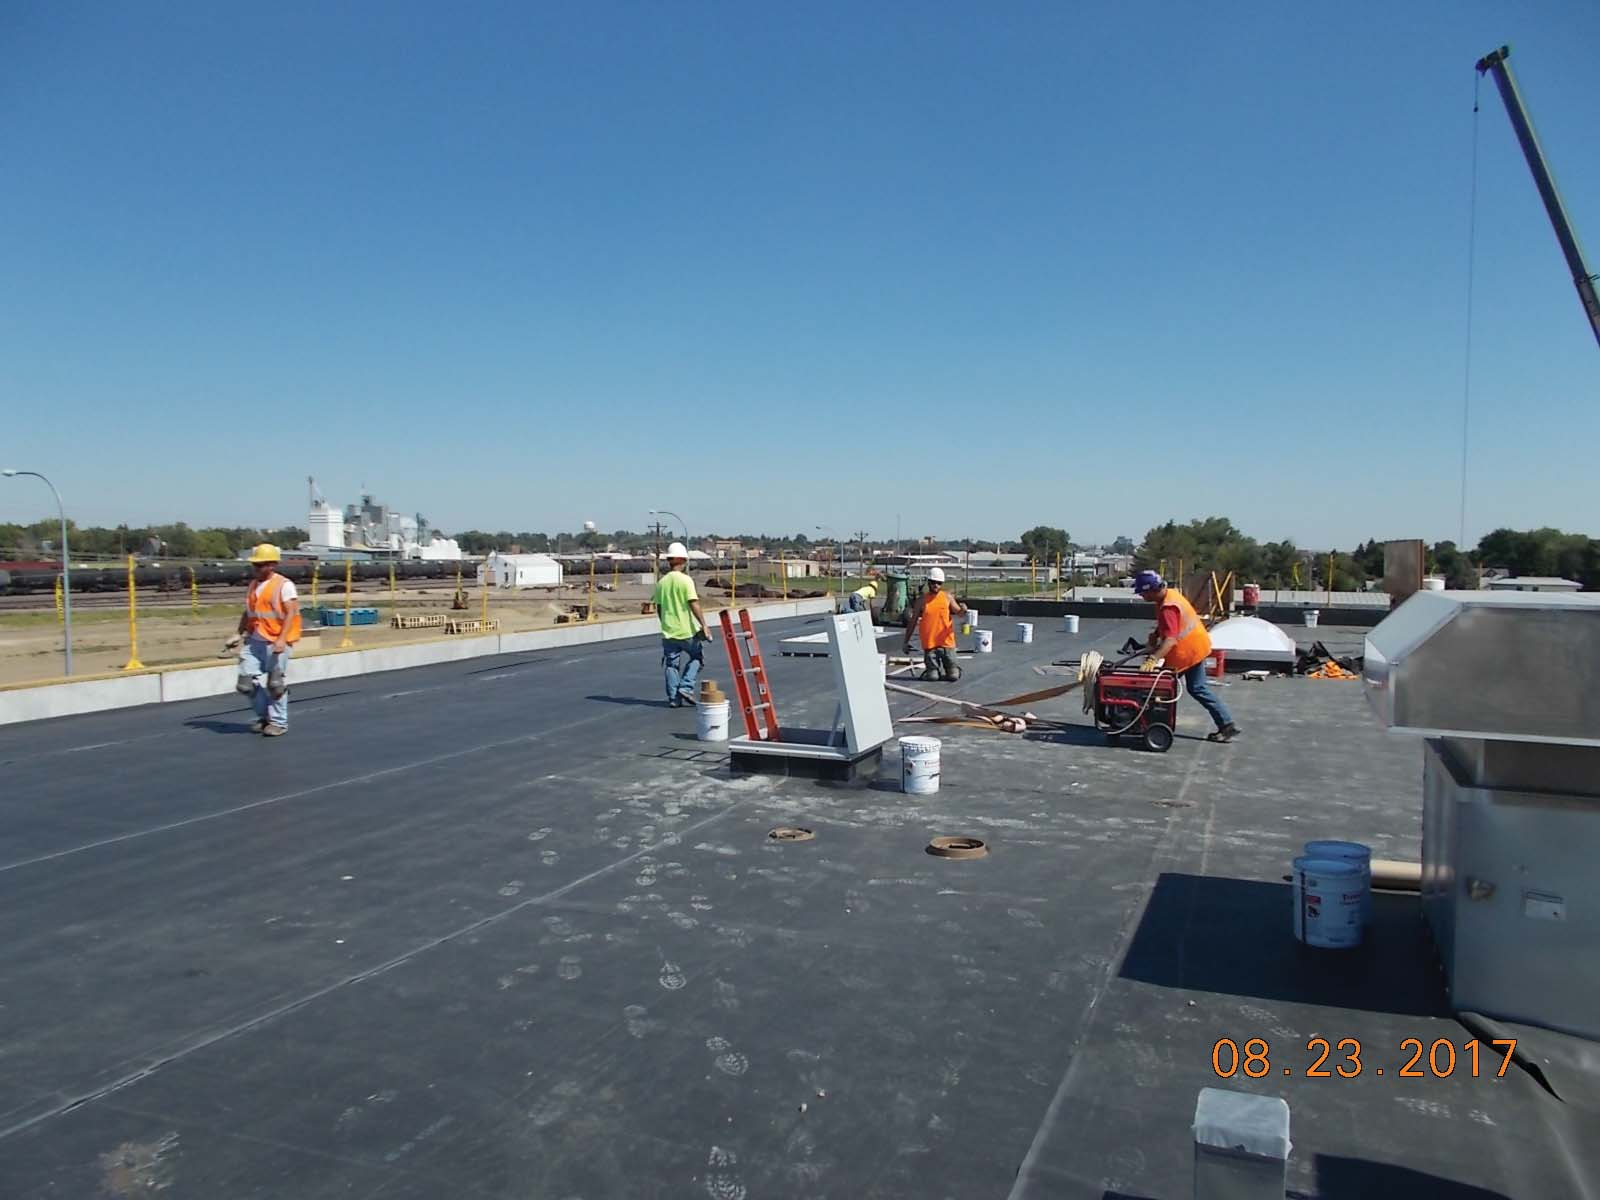 Twin City Roofing installing the rubber membrane for the roof at the north end of the building.